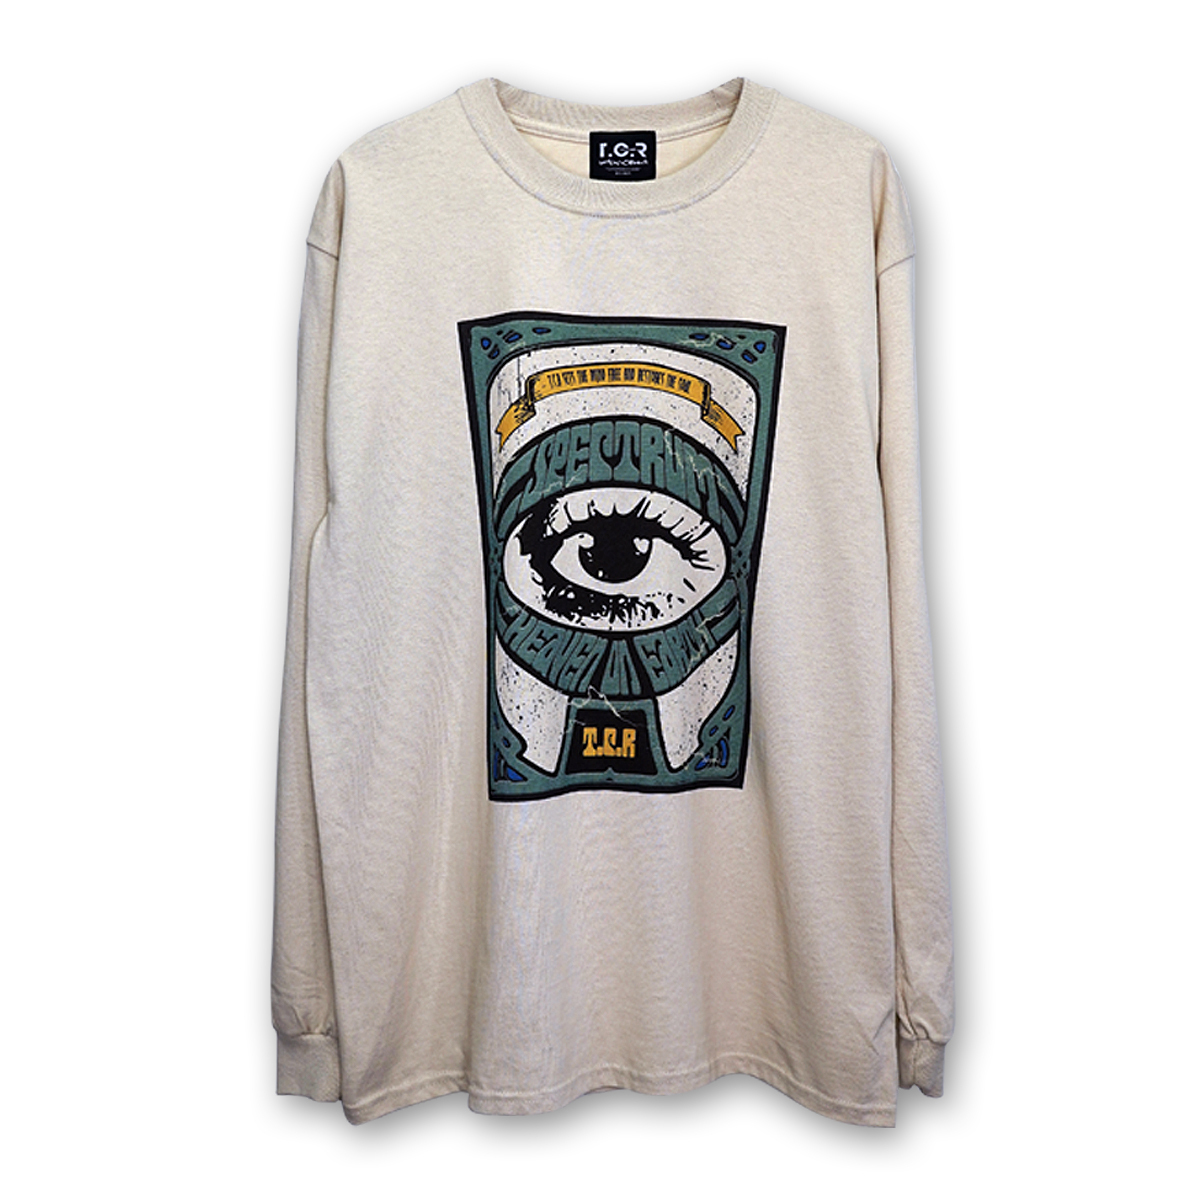 T.C.R RAVE L/S TEE - CHI☆MERO LIMITED EDITION - SAND